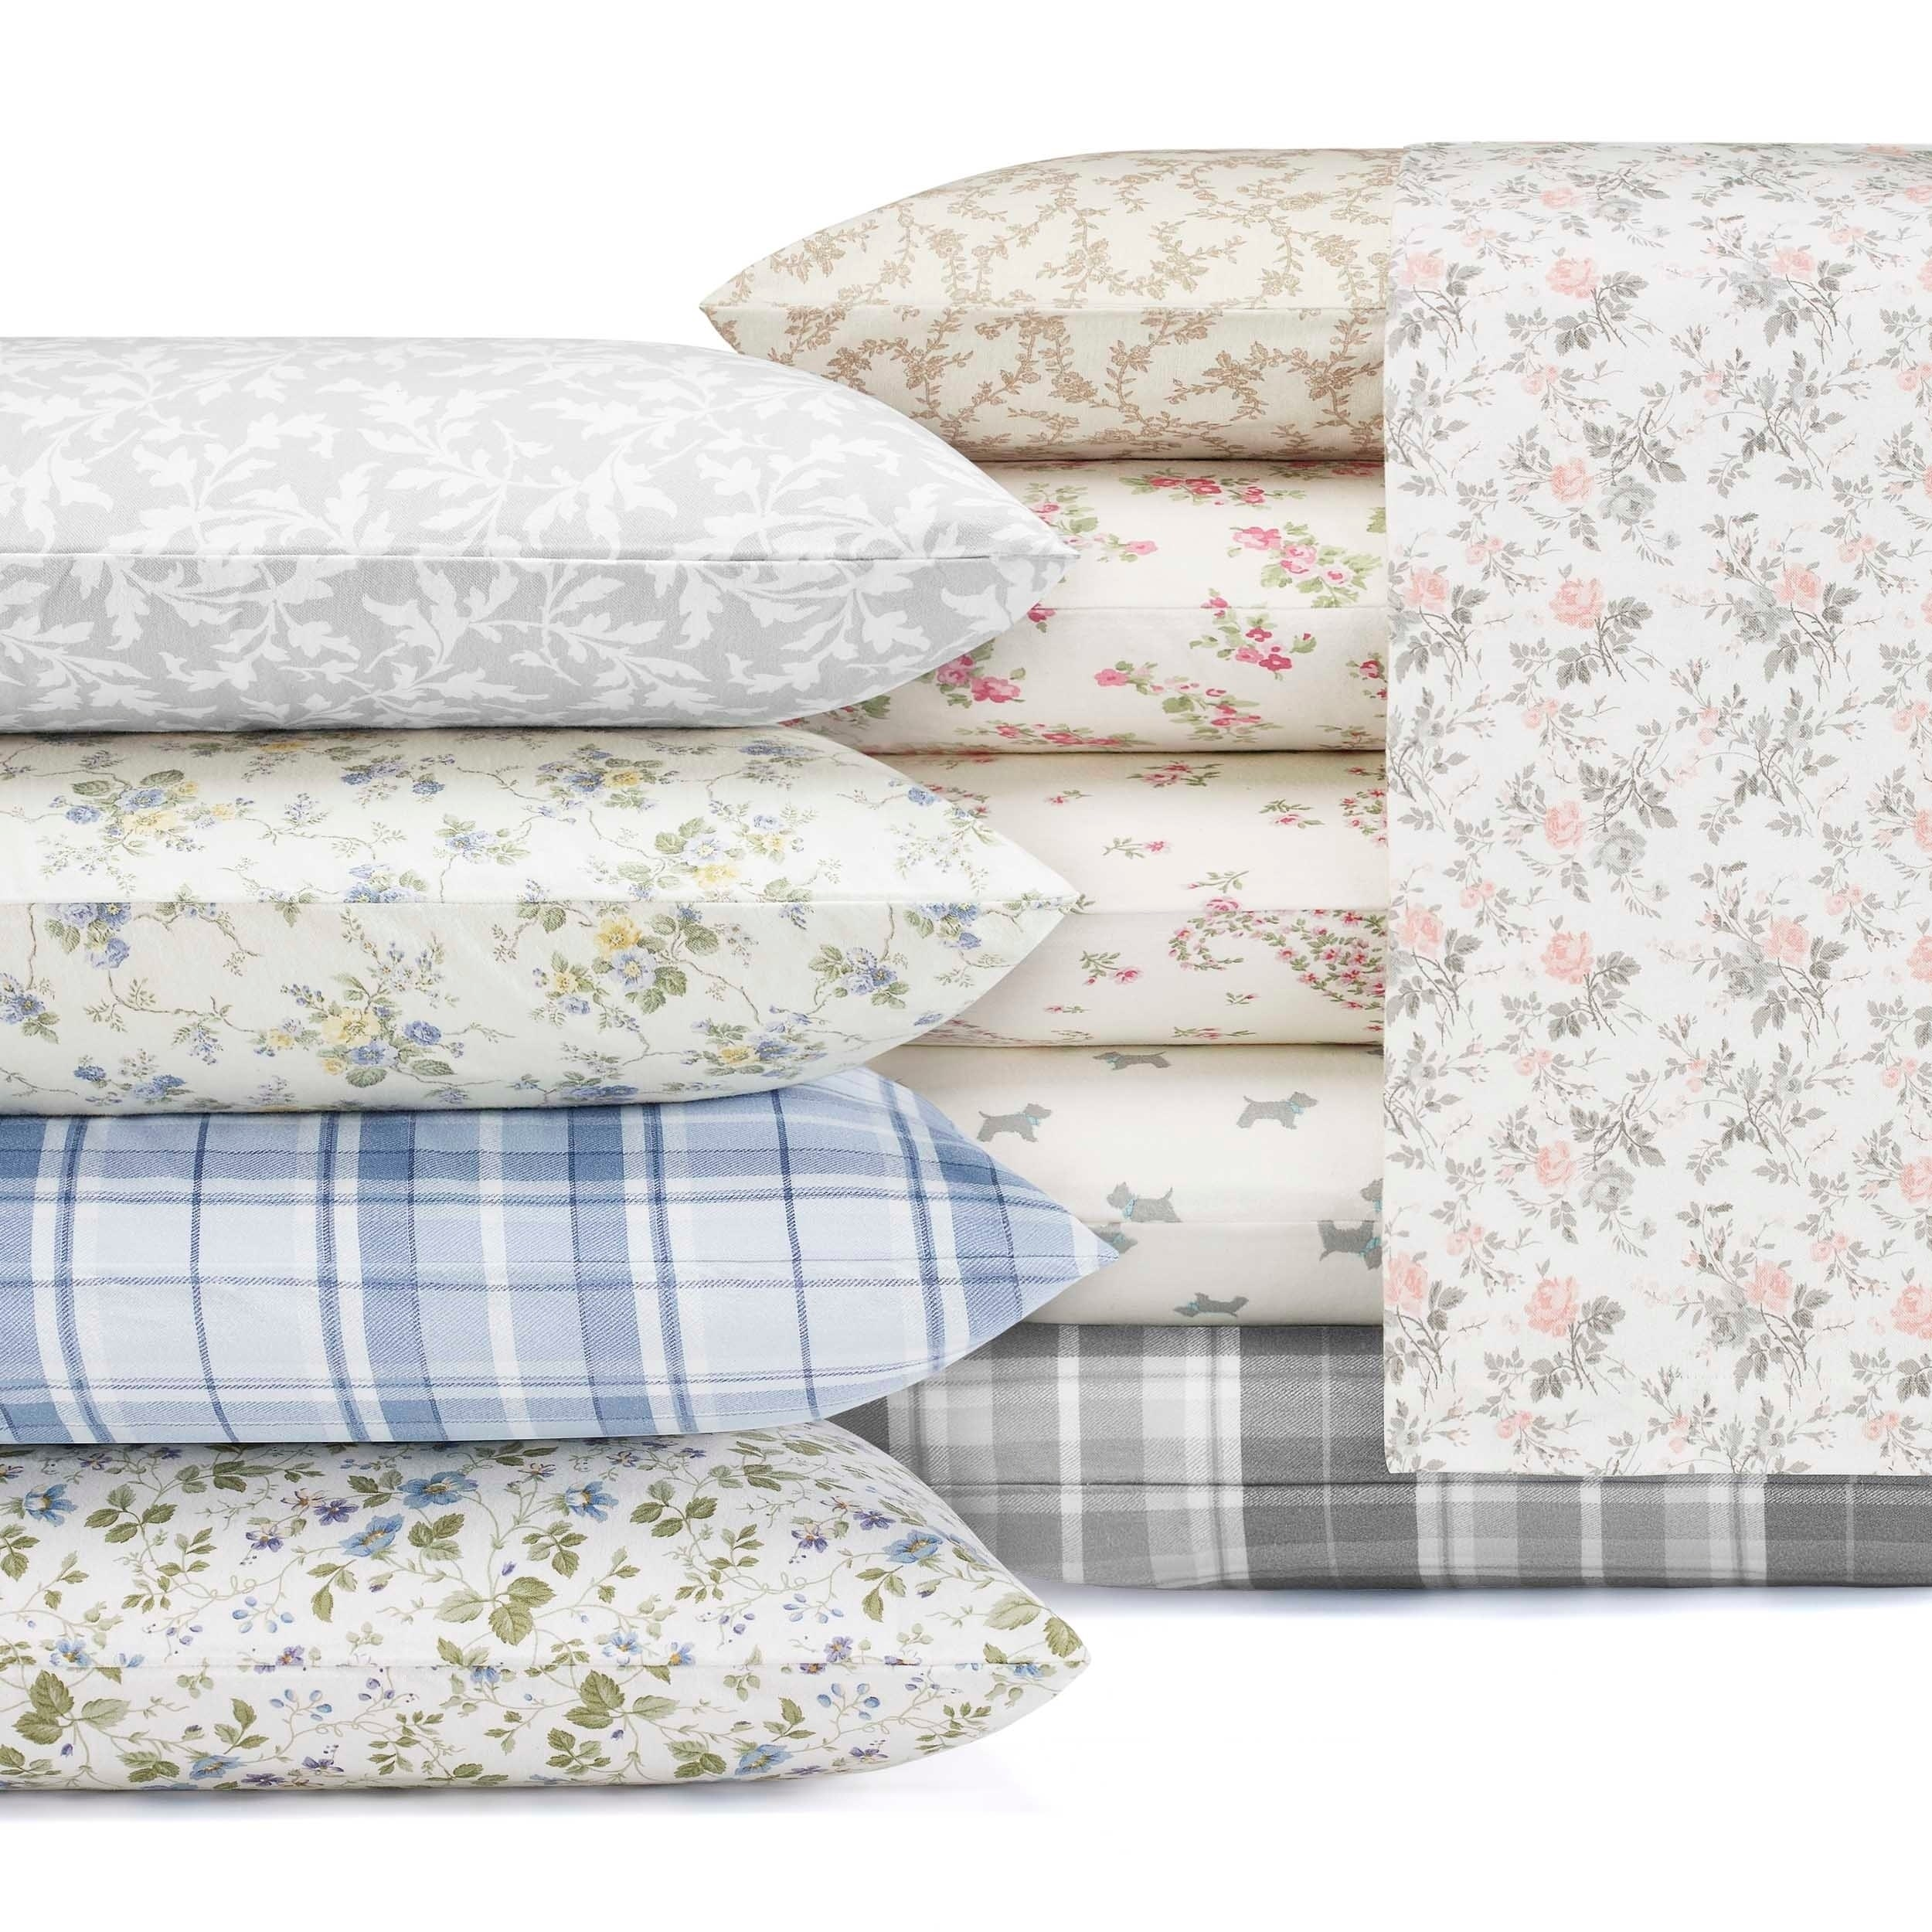 Laura Ashley Cotton Flannel Deep Pocket Sheet Sets (Caitlyn - King)